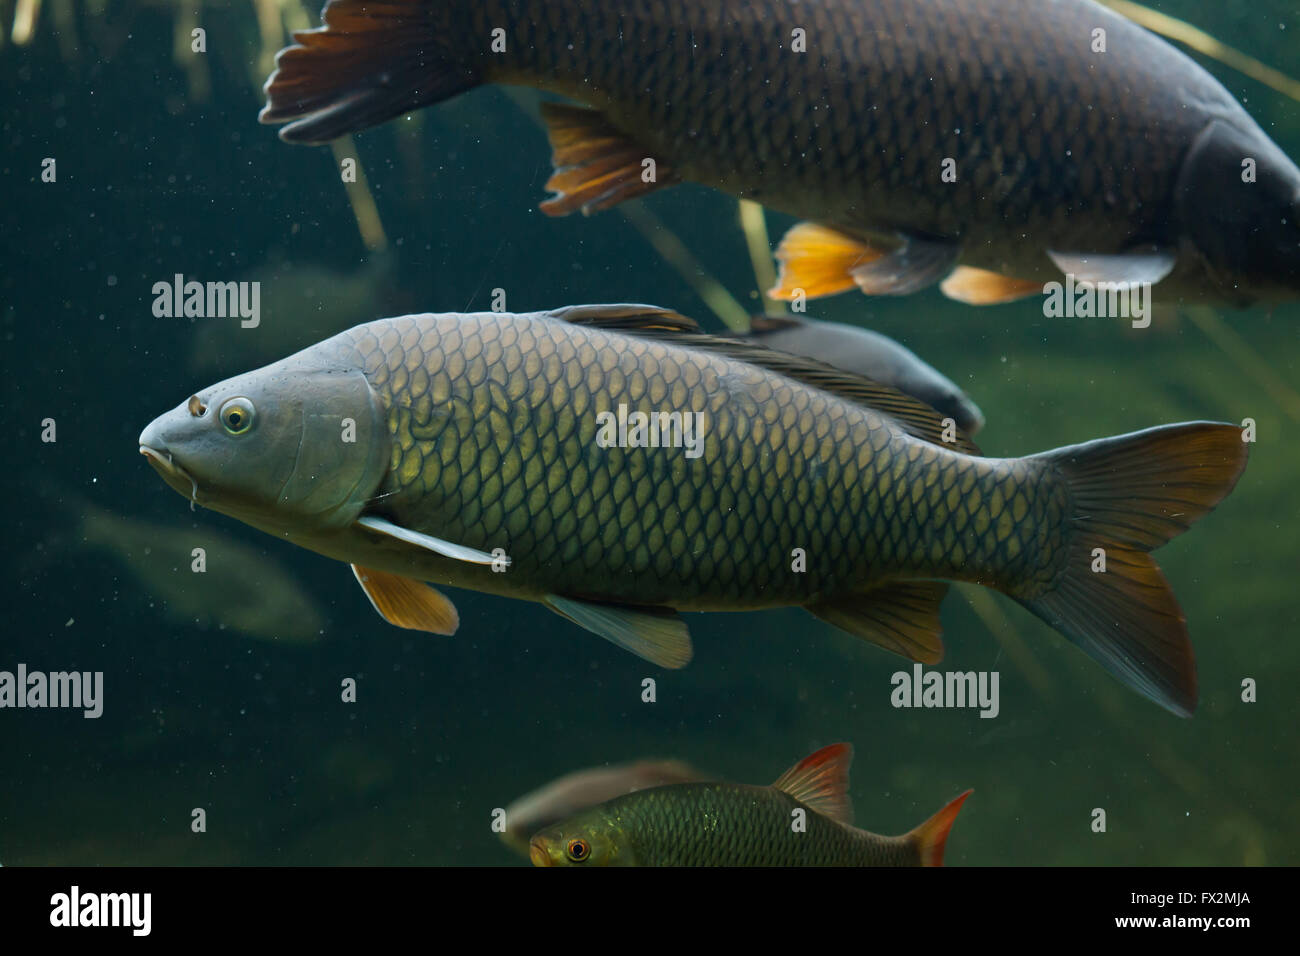 Wild common carp (Cyprinus carpio) at Budapest Zoo in Budapest, Hungary. Stock Photo